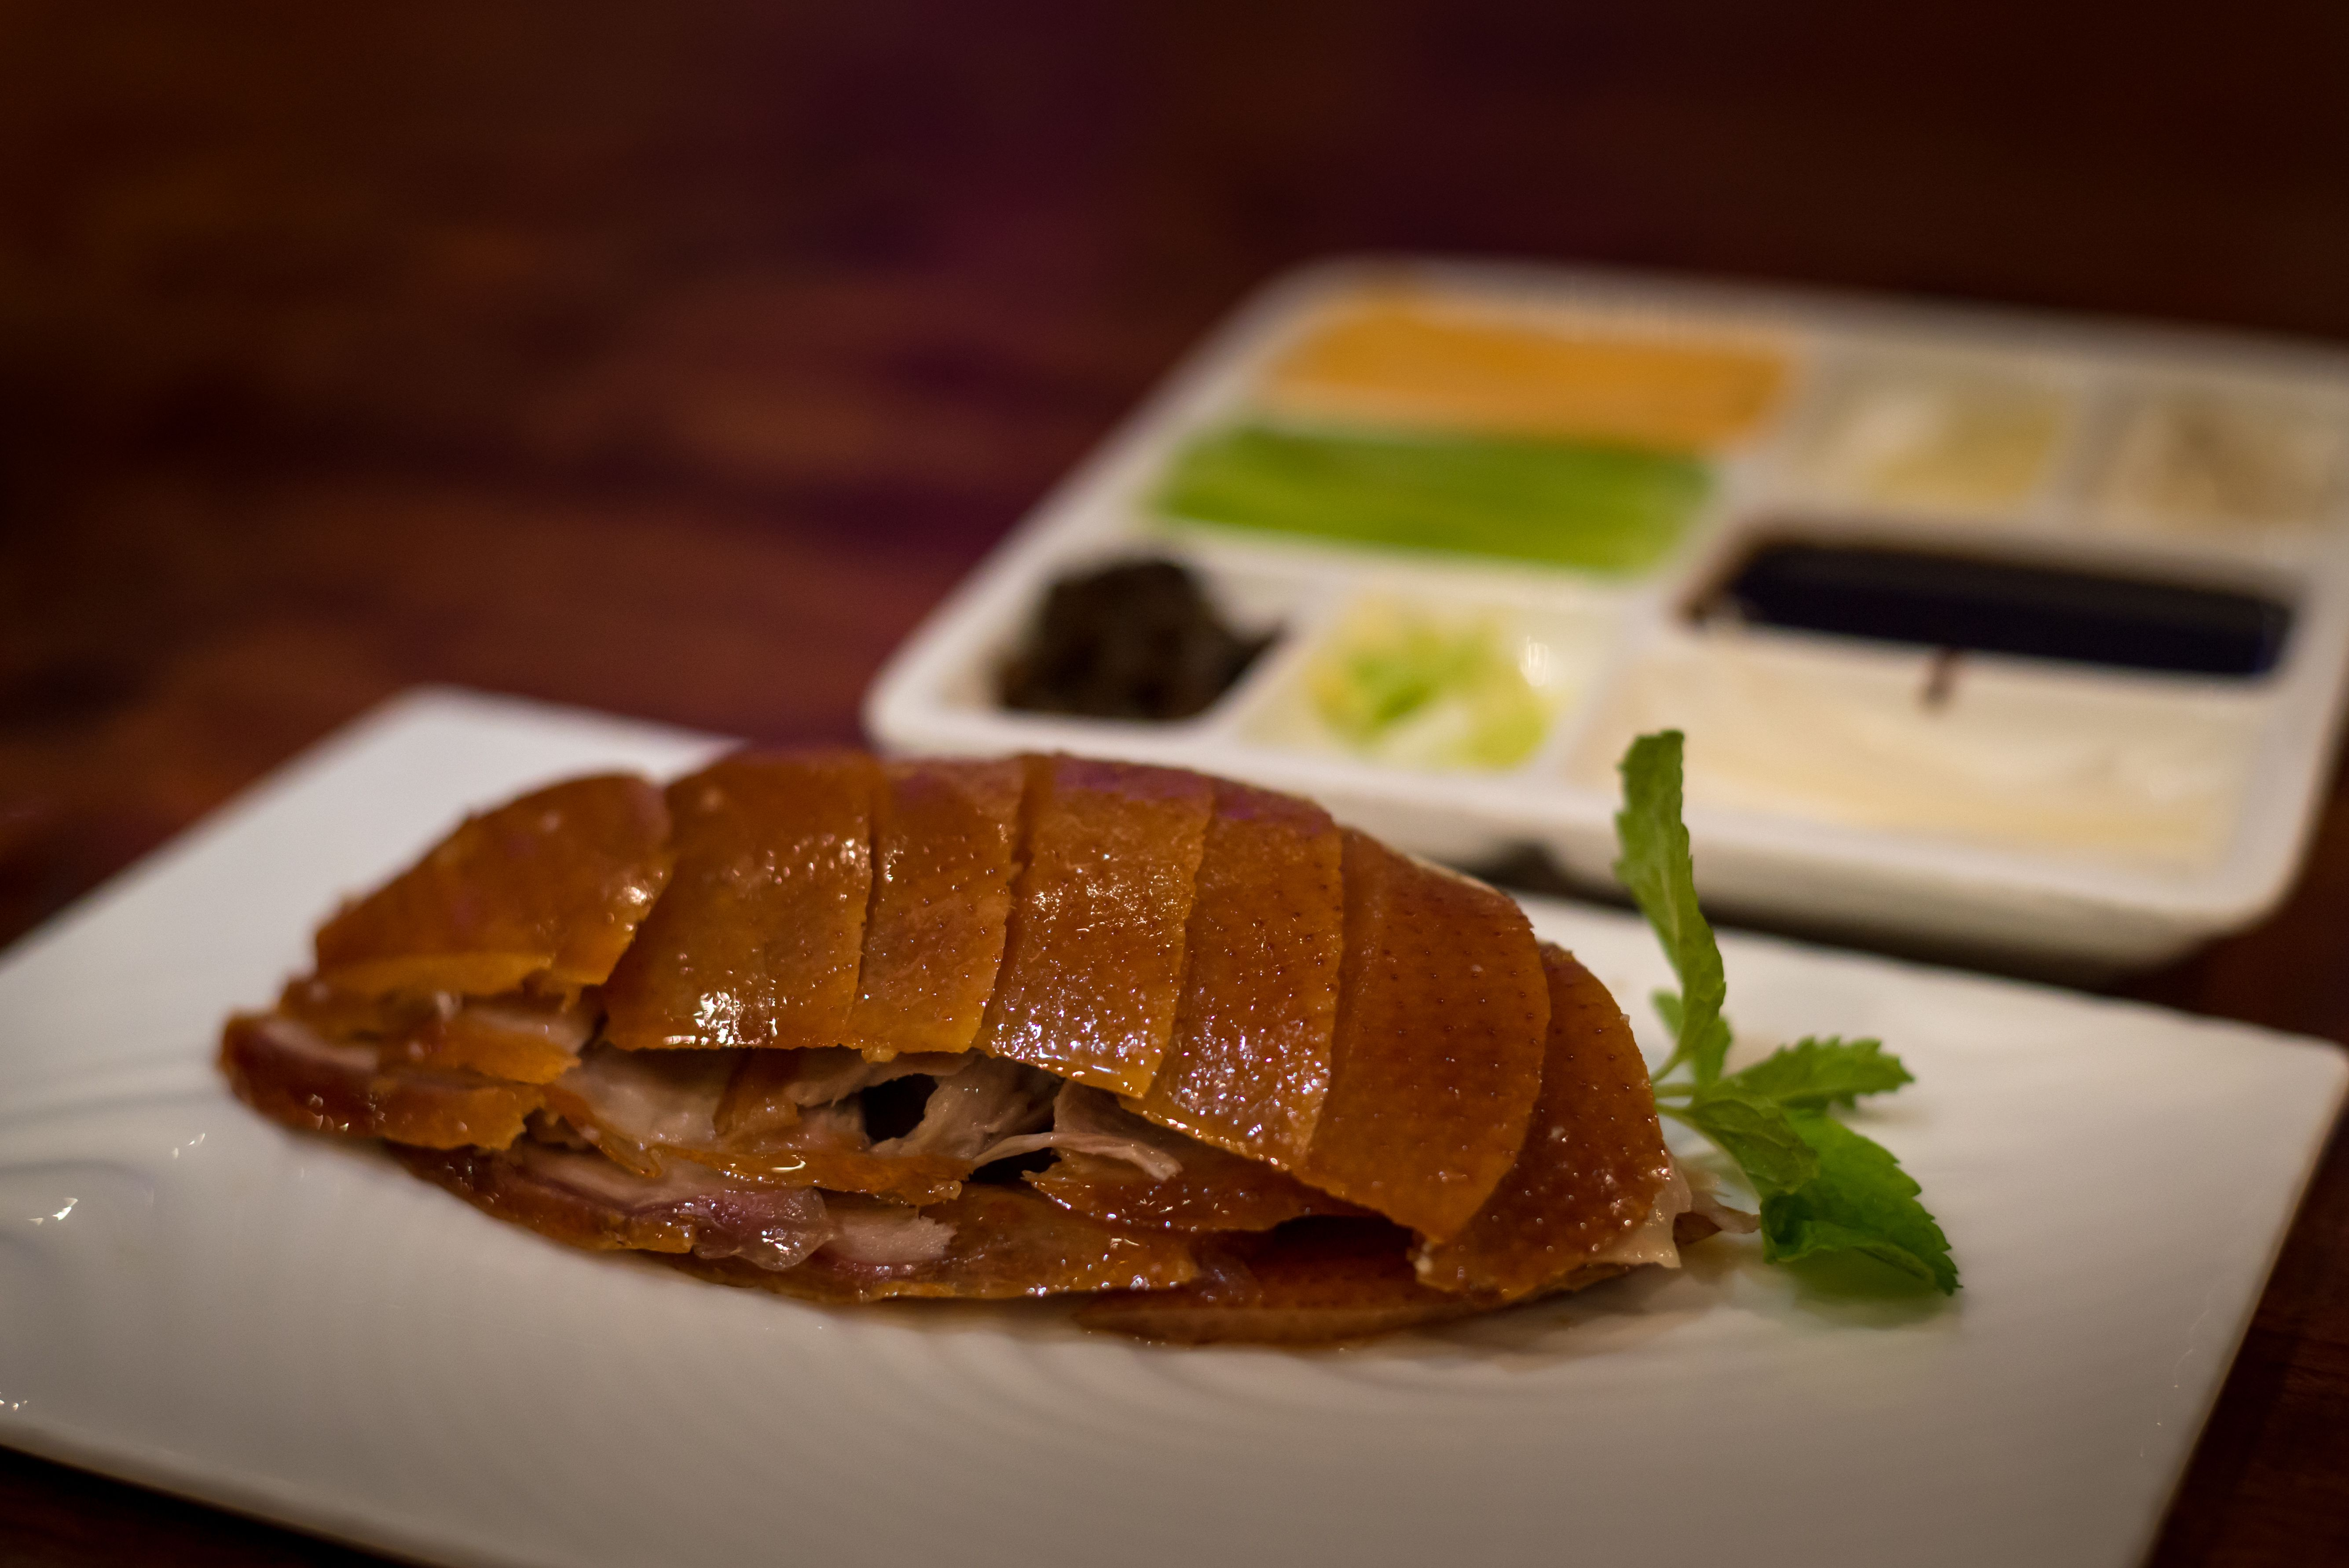 Beijing Roast duck, one of famous food of China